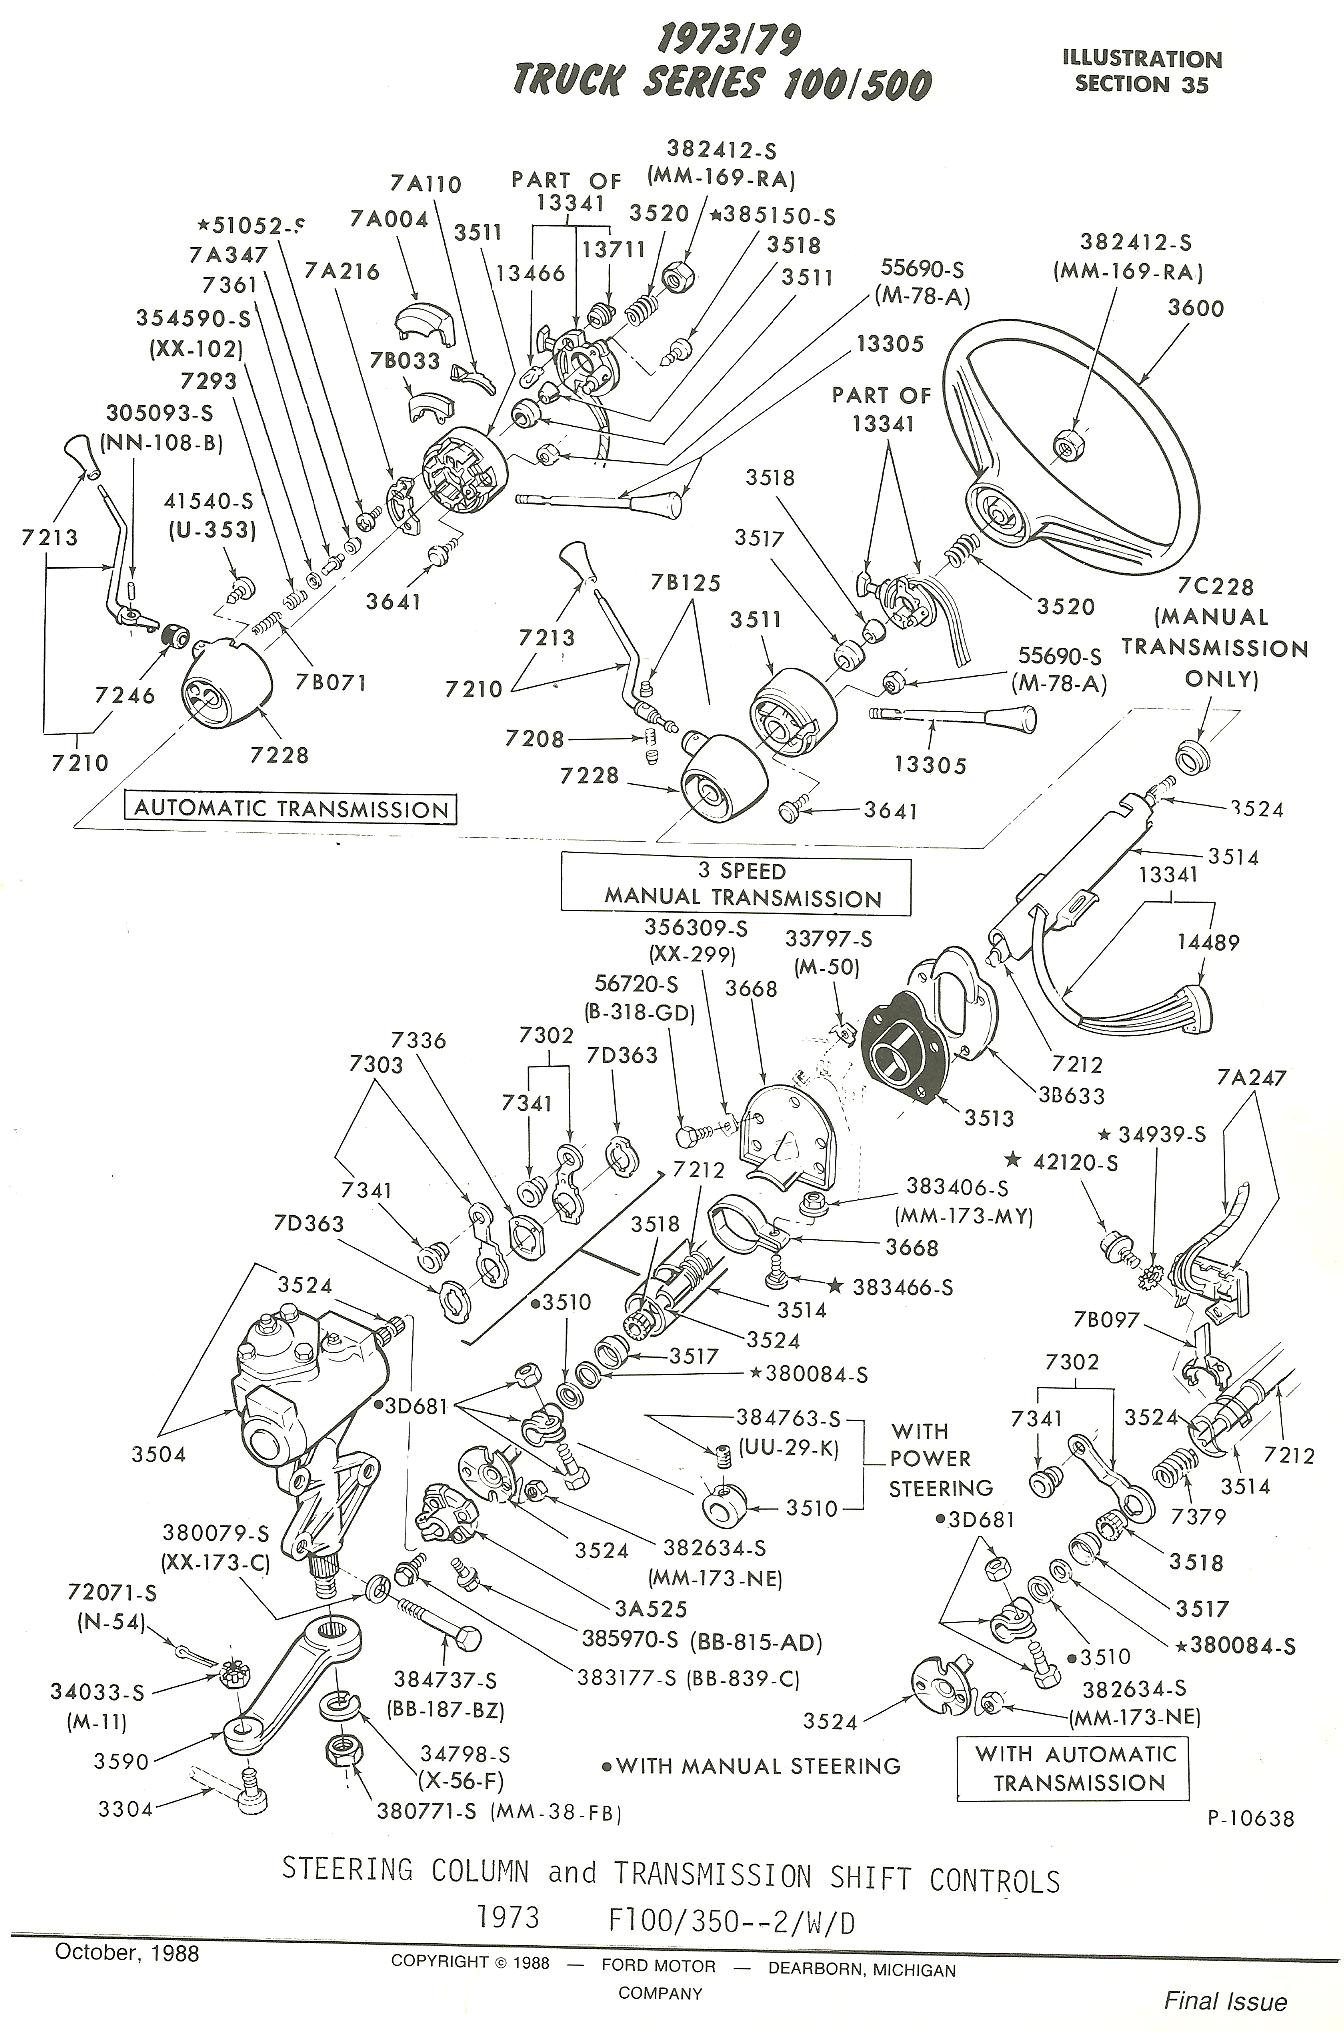 77 ford truck steering diagram  77  get free image about wiring diagram